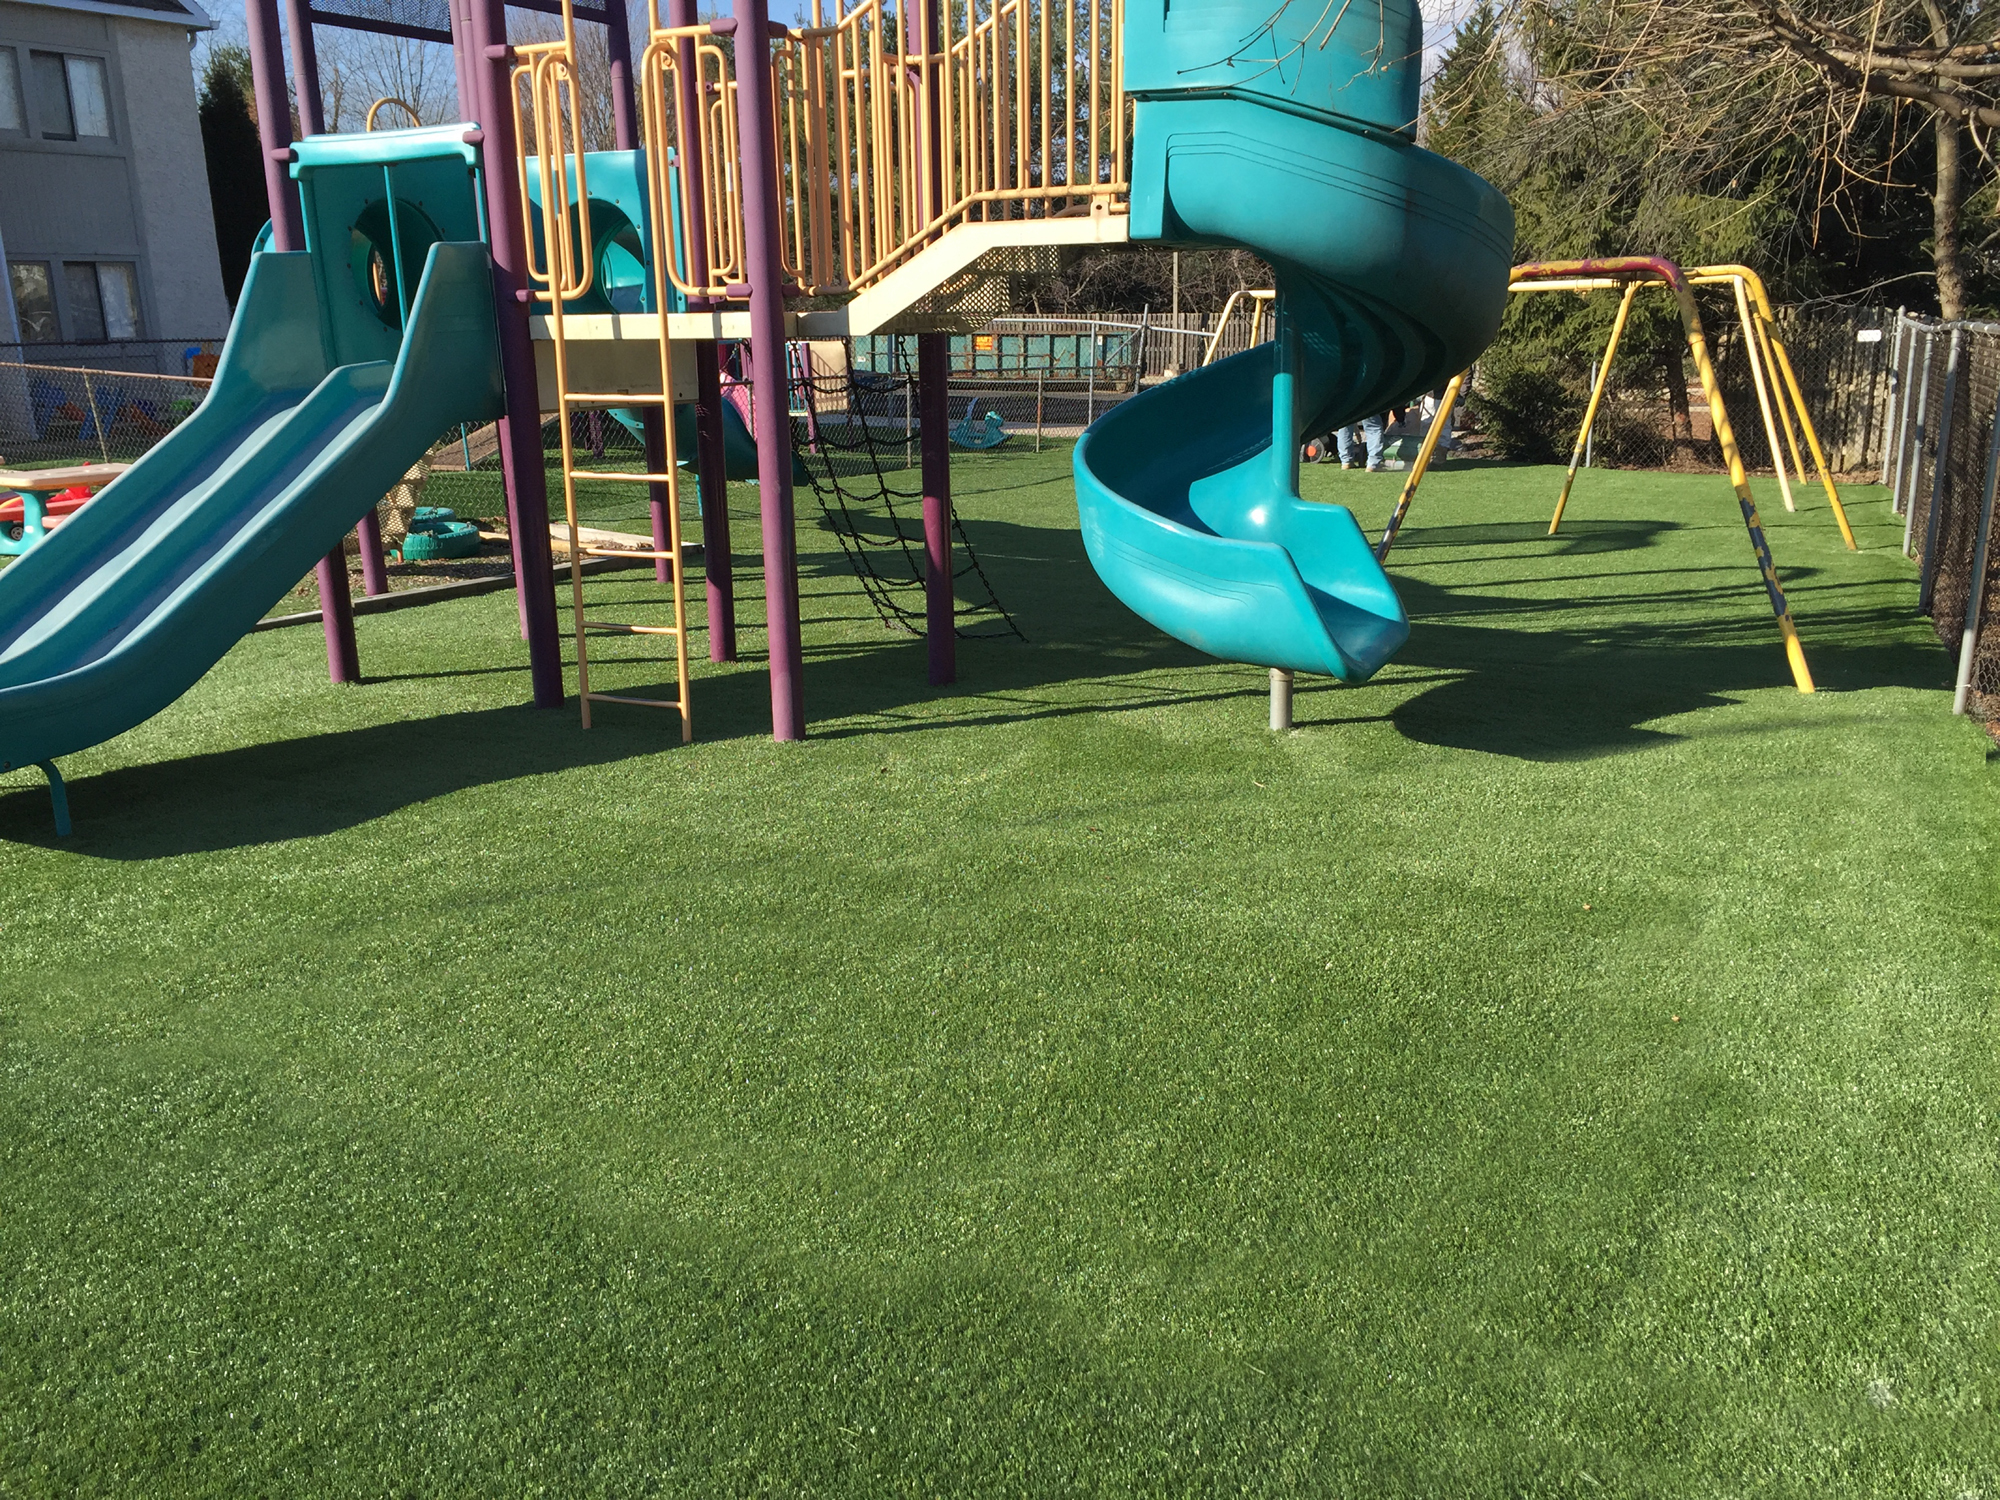 Colorful outdoor play equipment with artificial turf surface